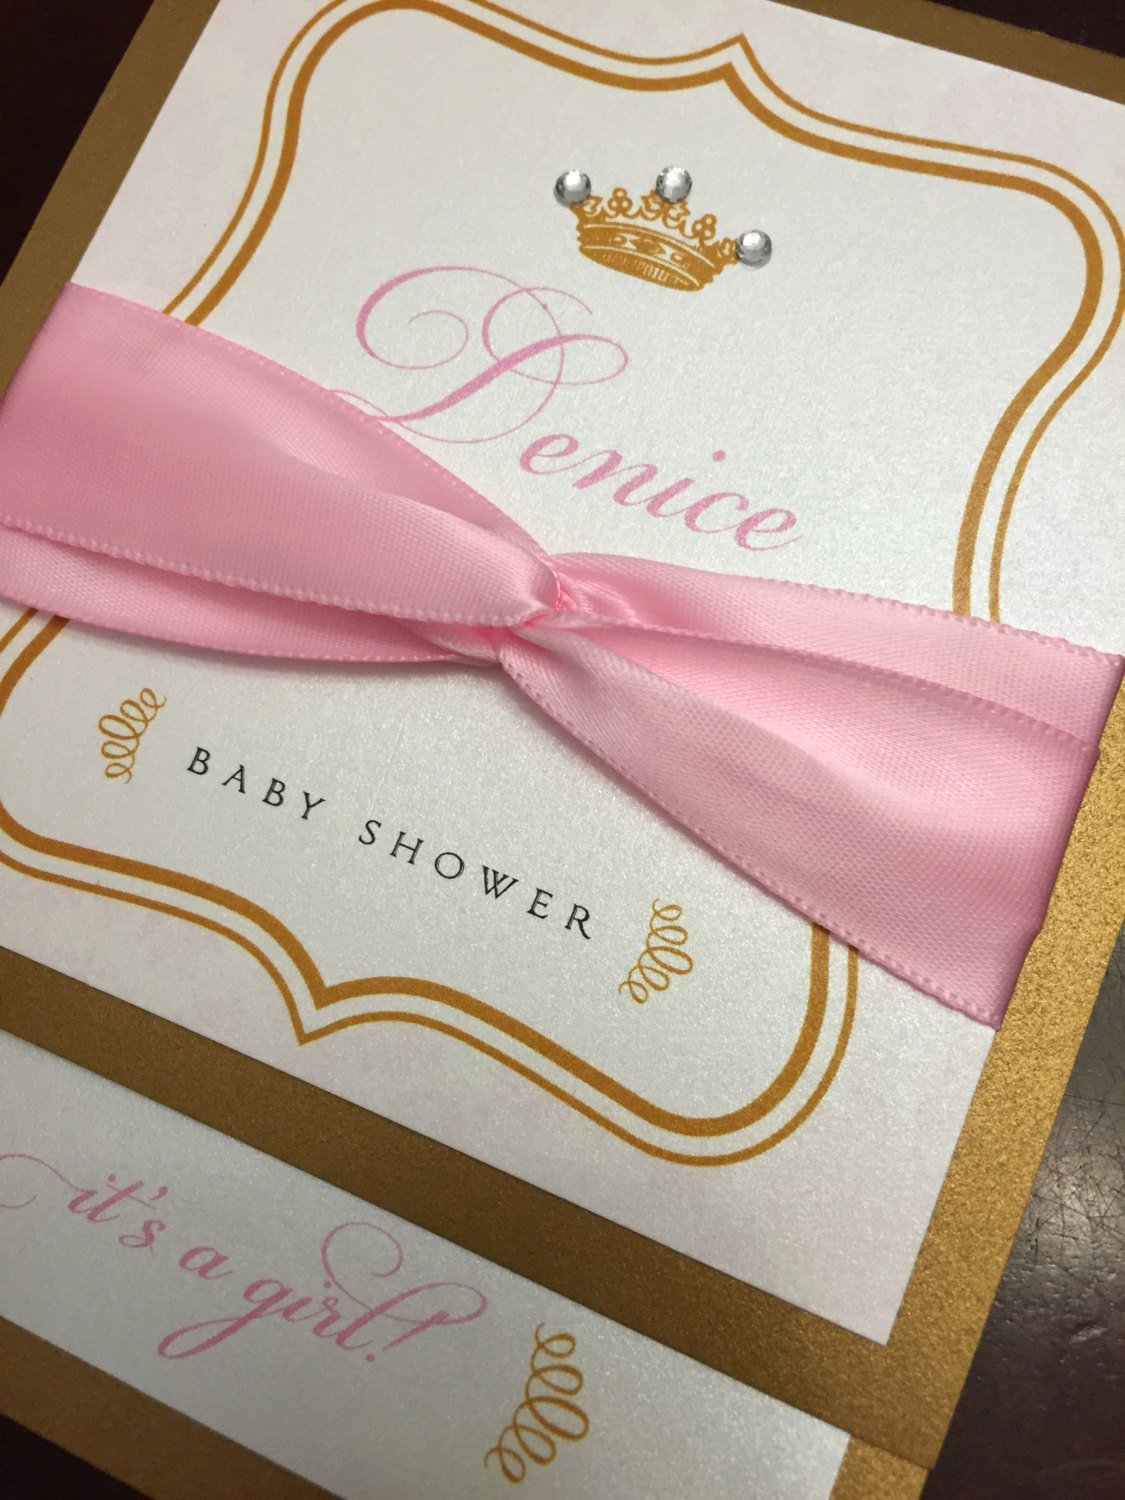 Princess Baby Shower Invitations Fresh Princess Baby Shower Invitations by Anaderoux On Etsy